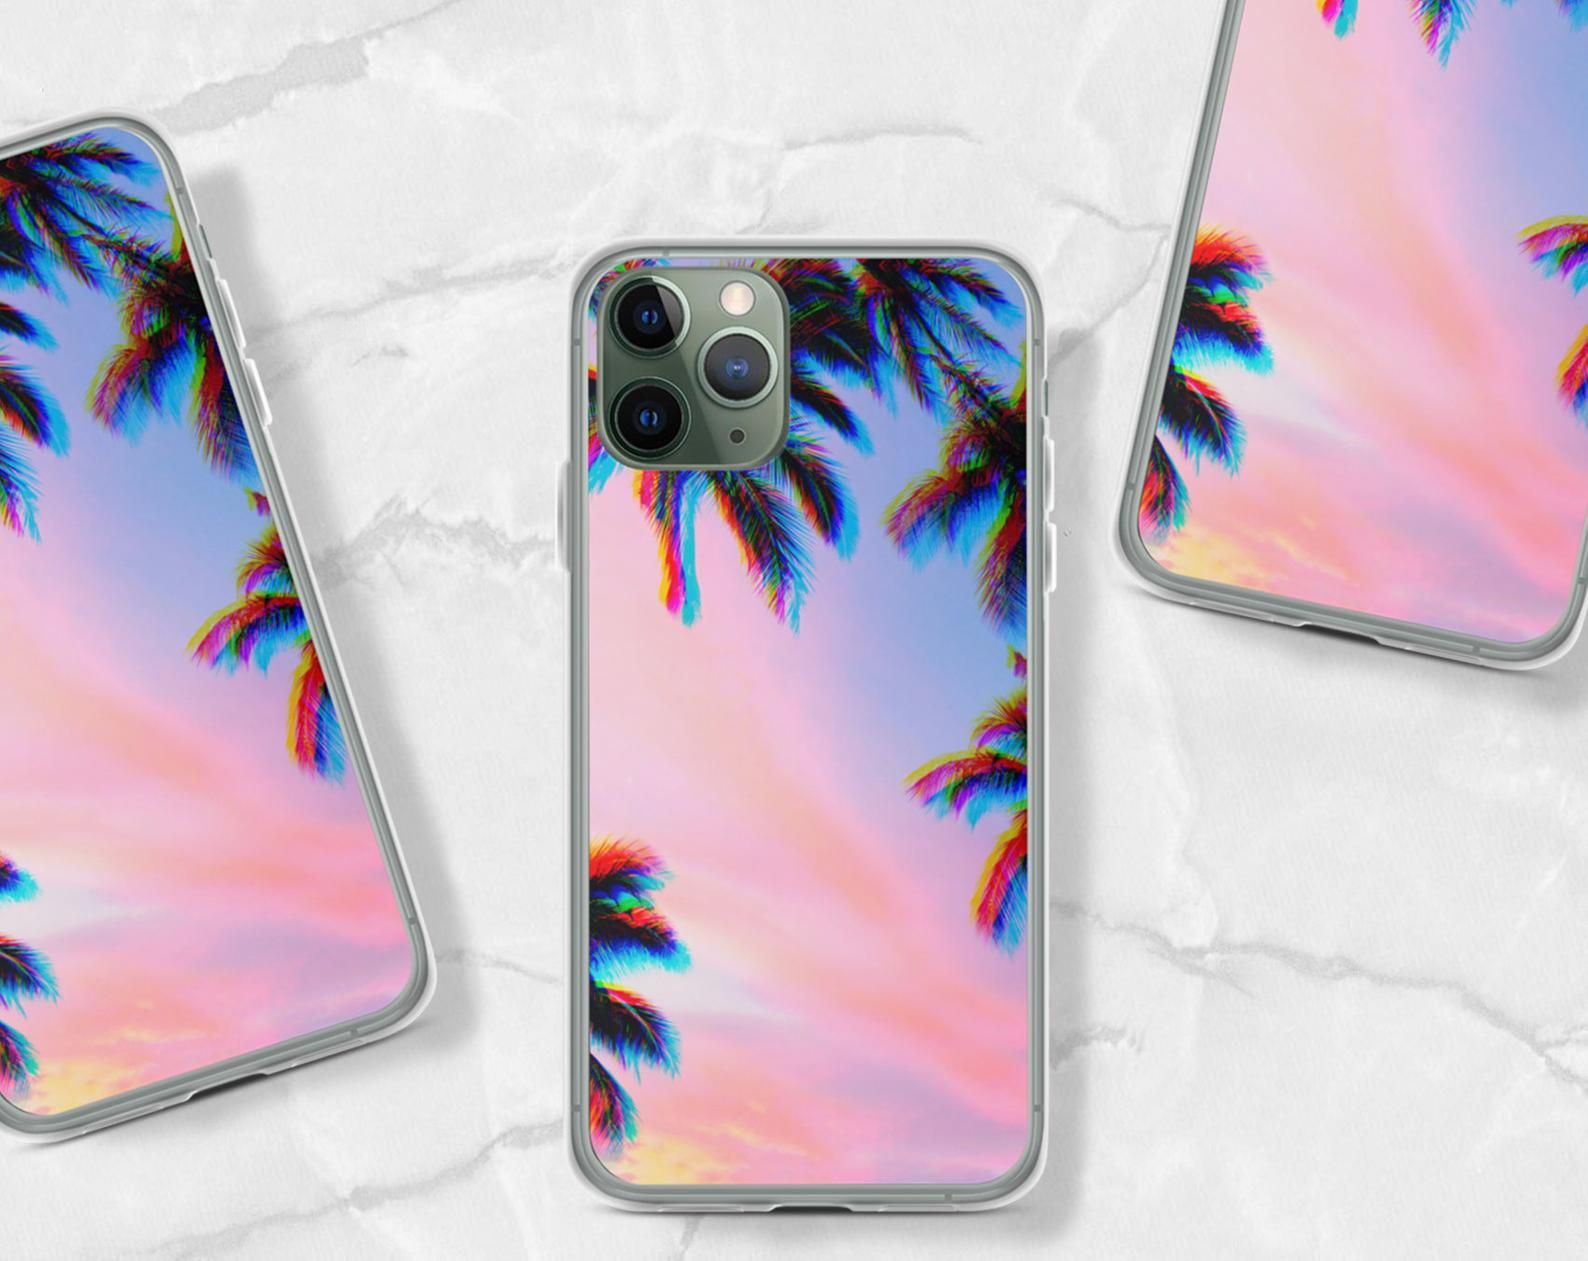 Trippy Palm Tree Phone Case For Iphone 12 Mini 11 Pro Max Xr Etsy Iphone Iphone Cases Phone Cases